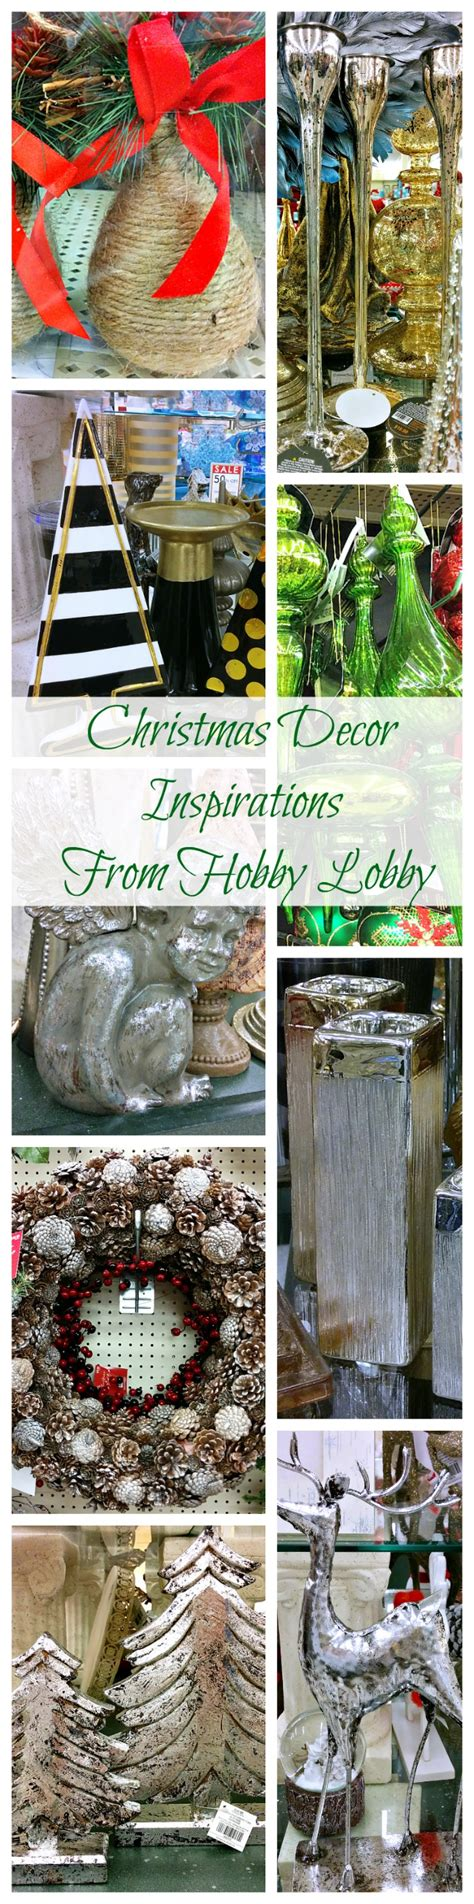 christmas decor ideas inspirations from hobby lobby do